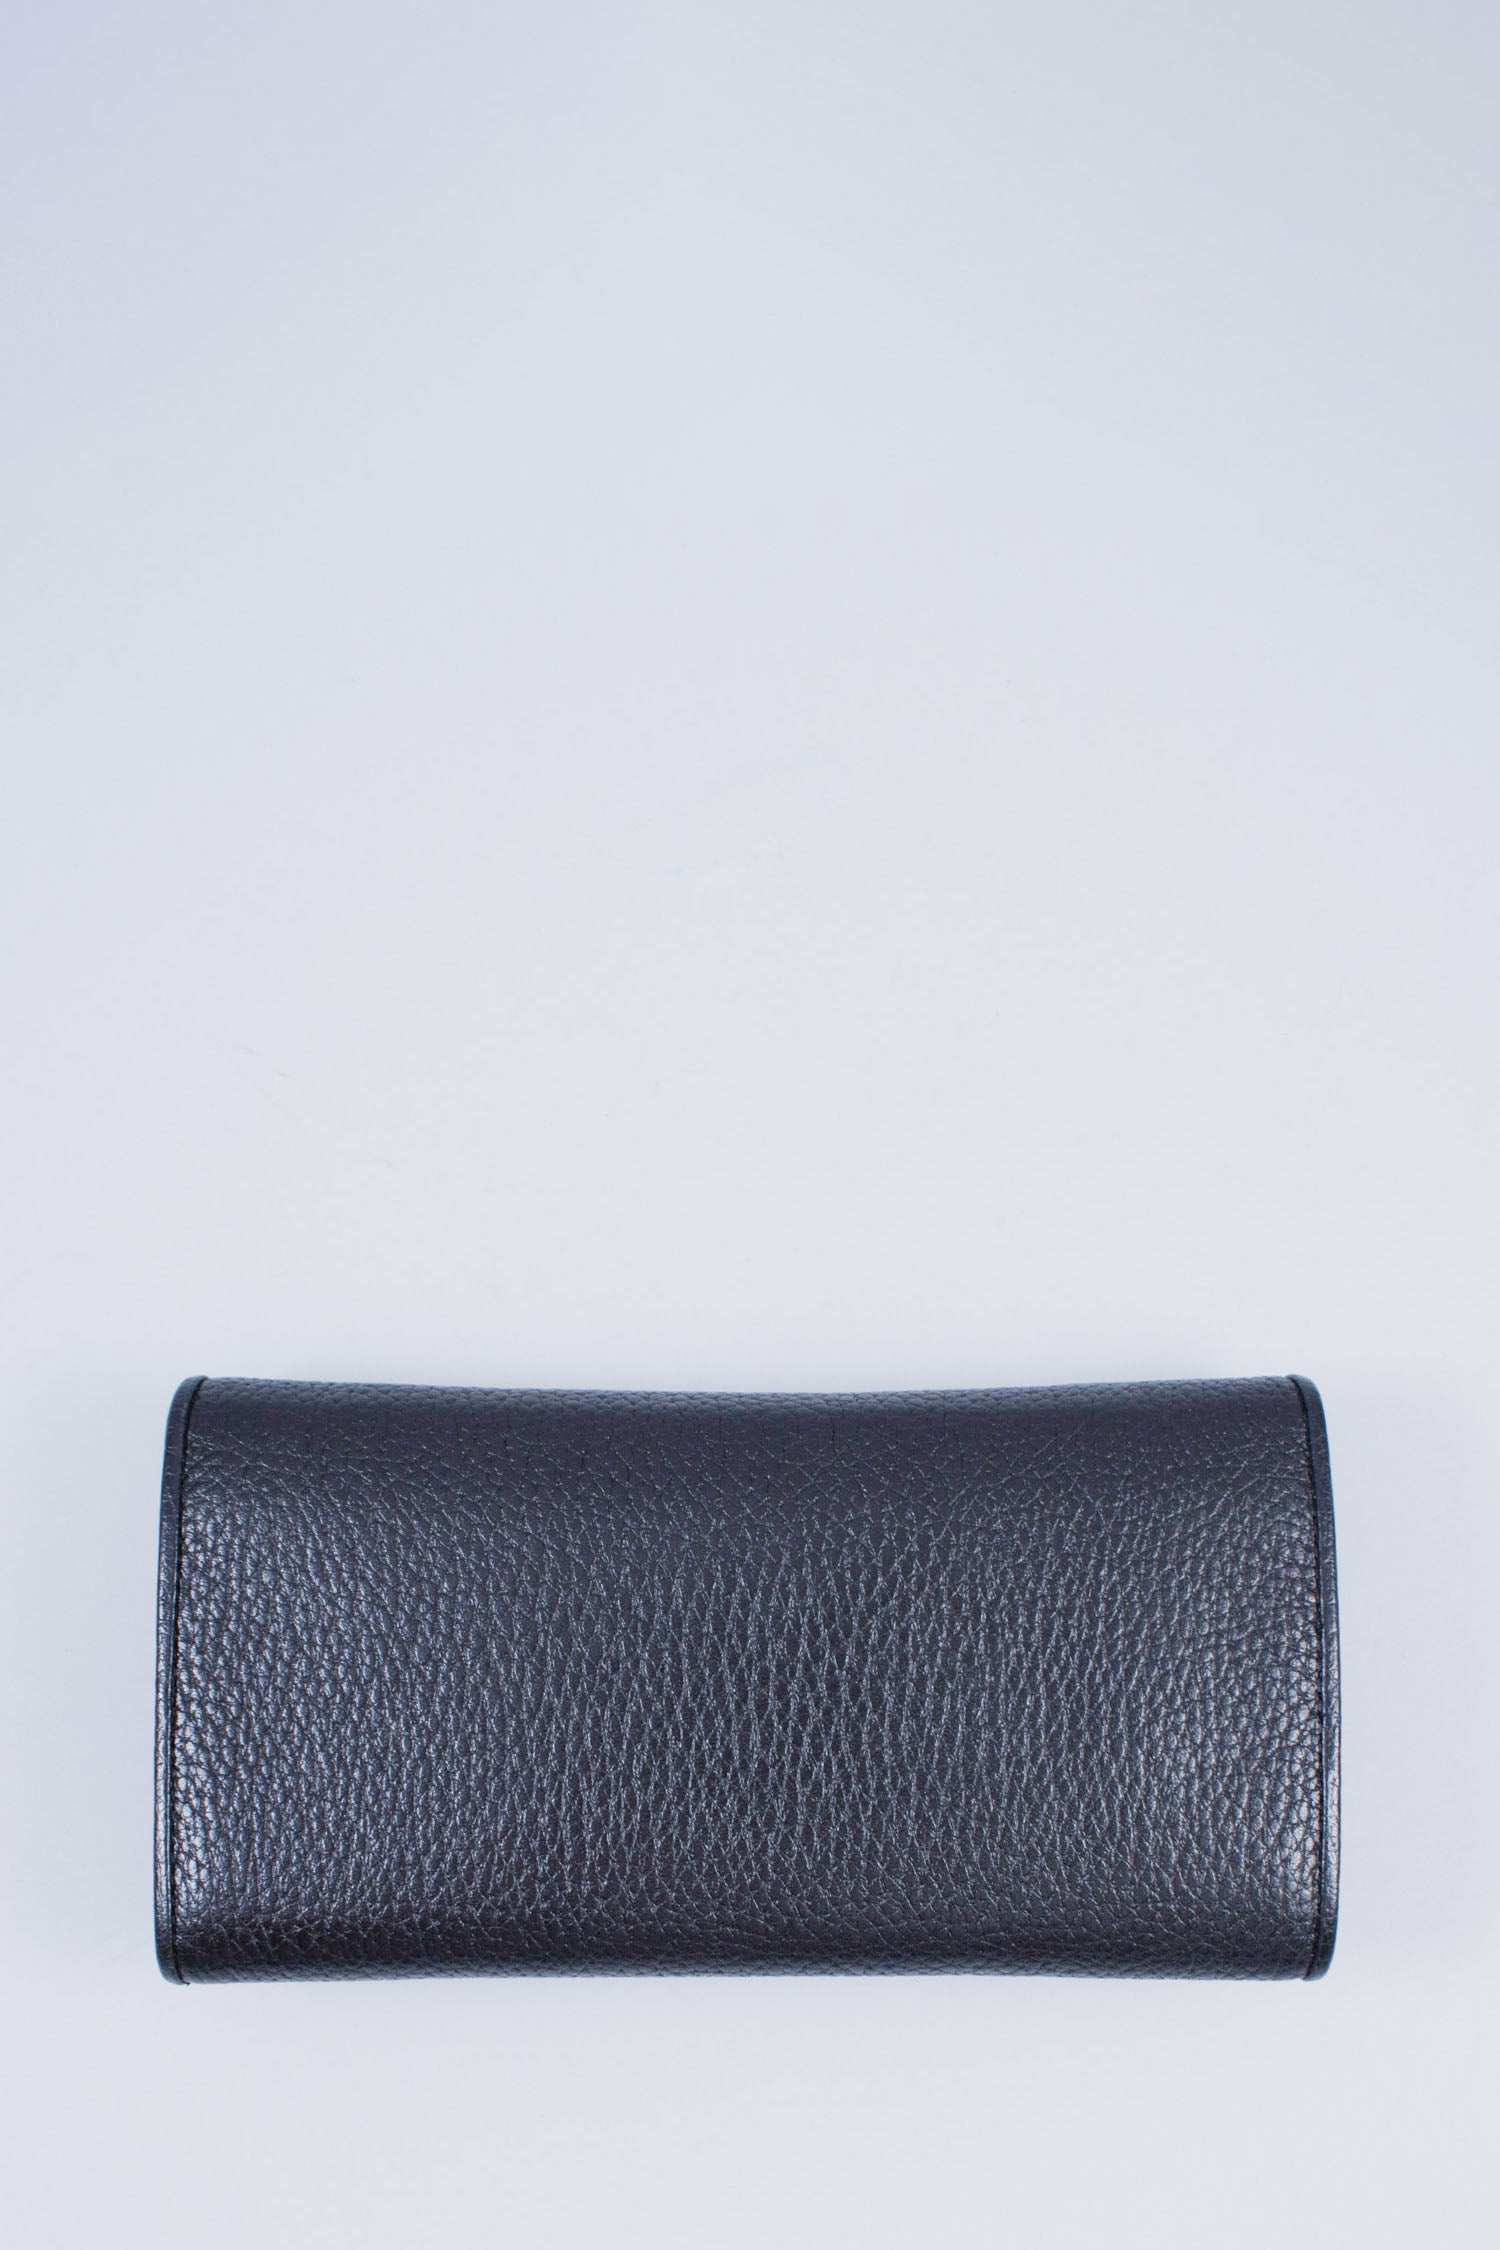 MCM Black Leather Long Wallet